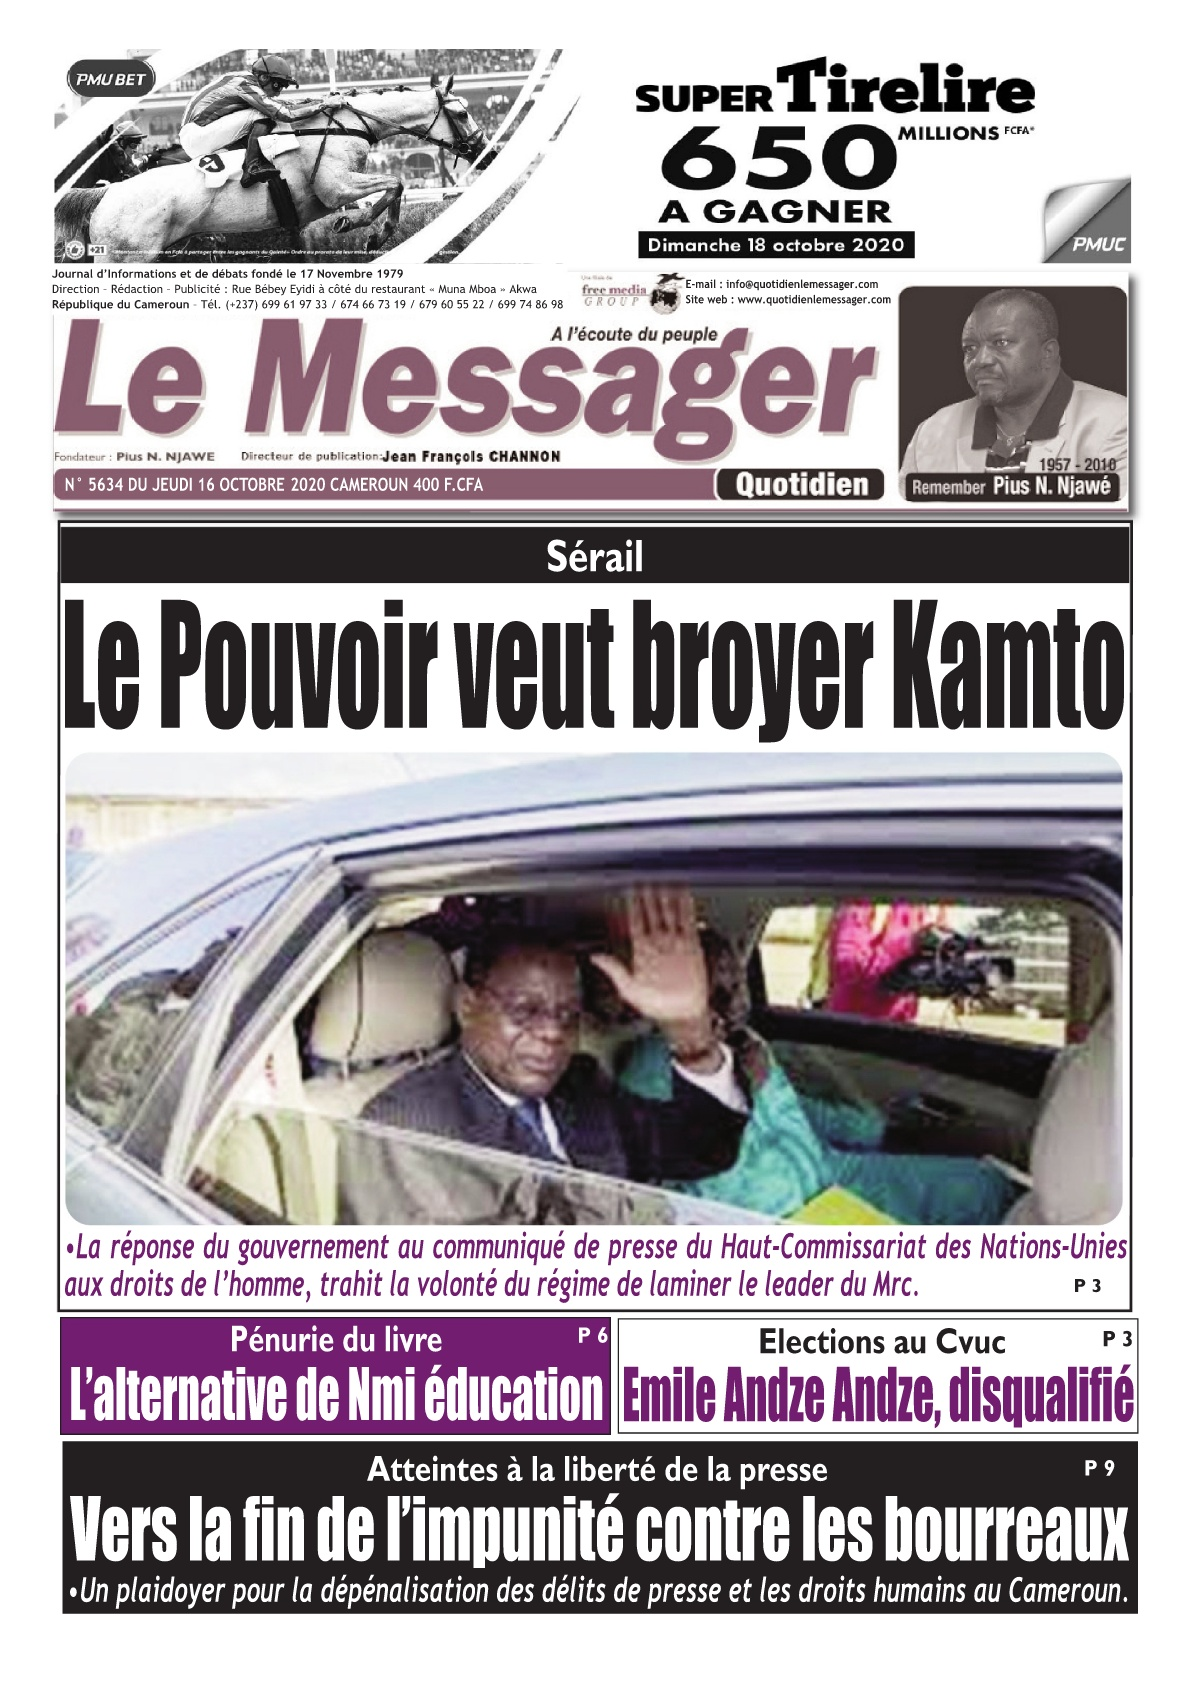 Le Messager - 16/10/2020